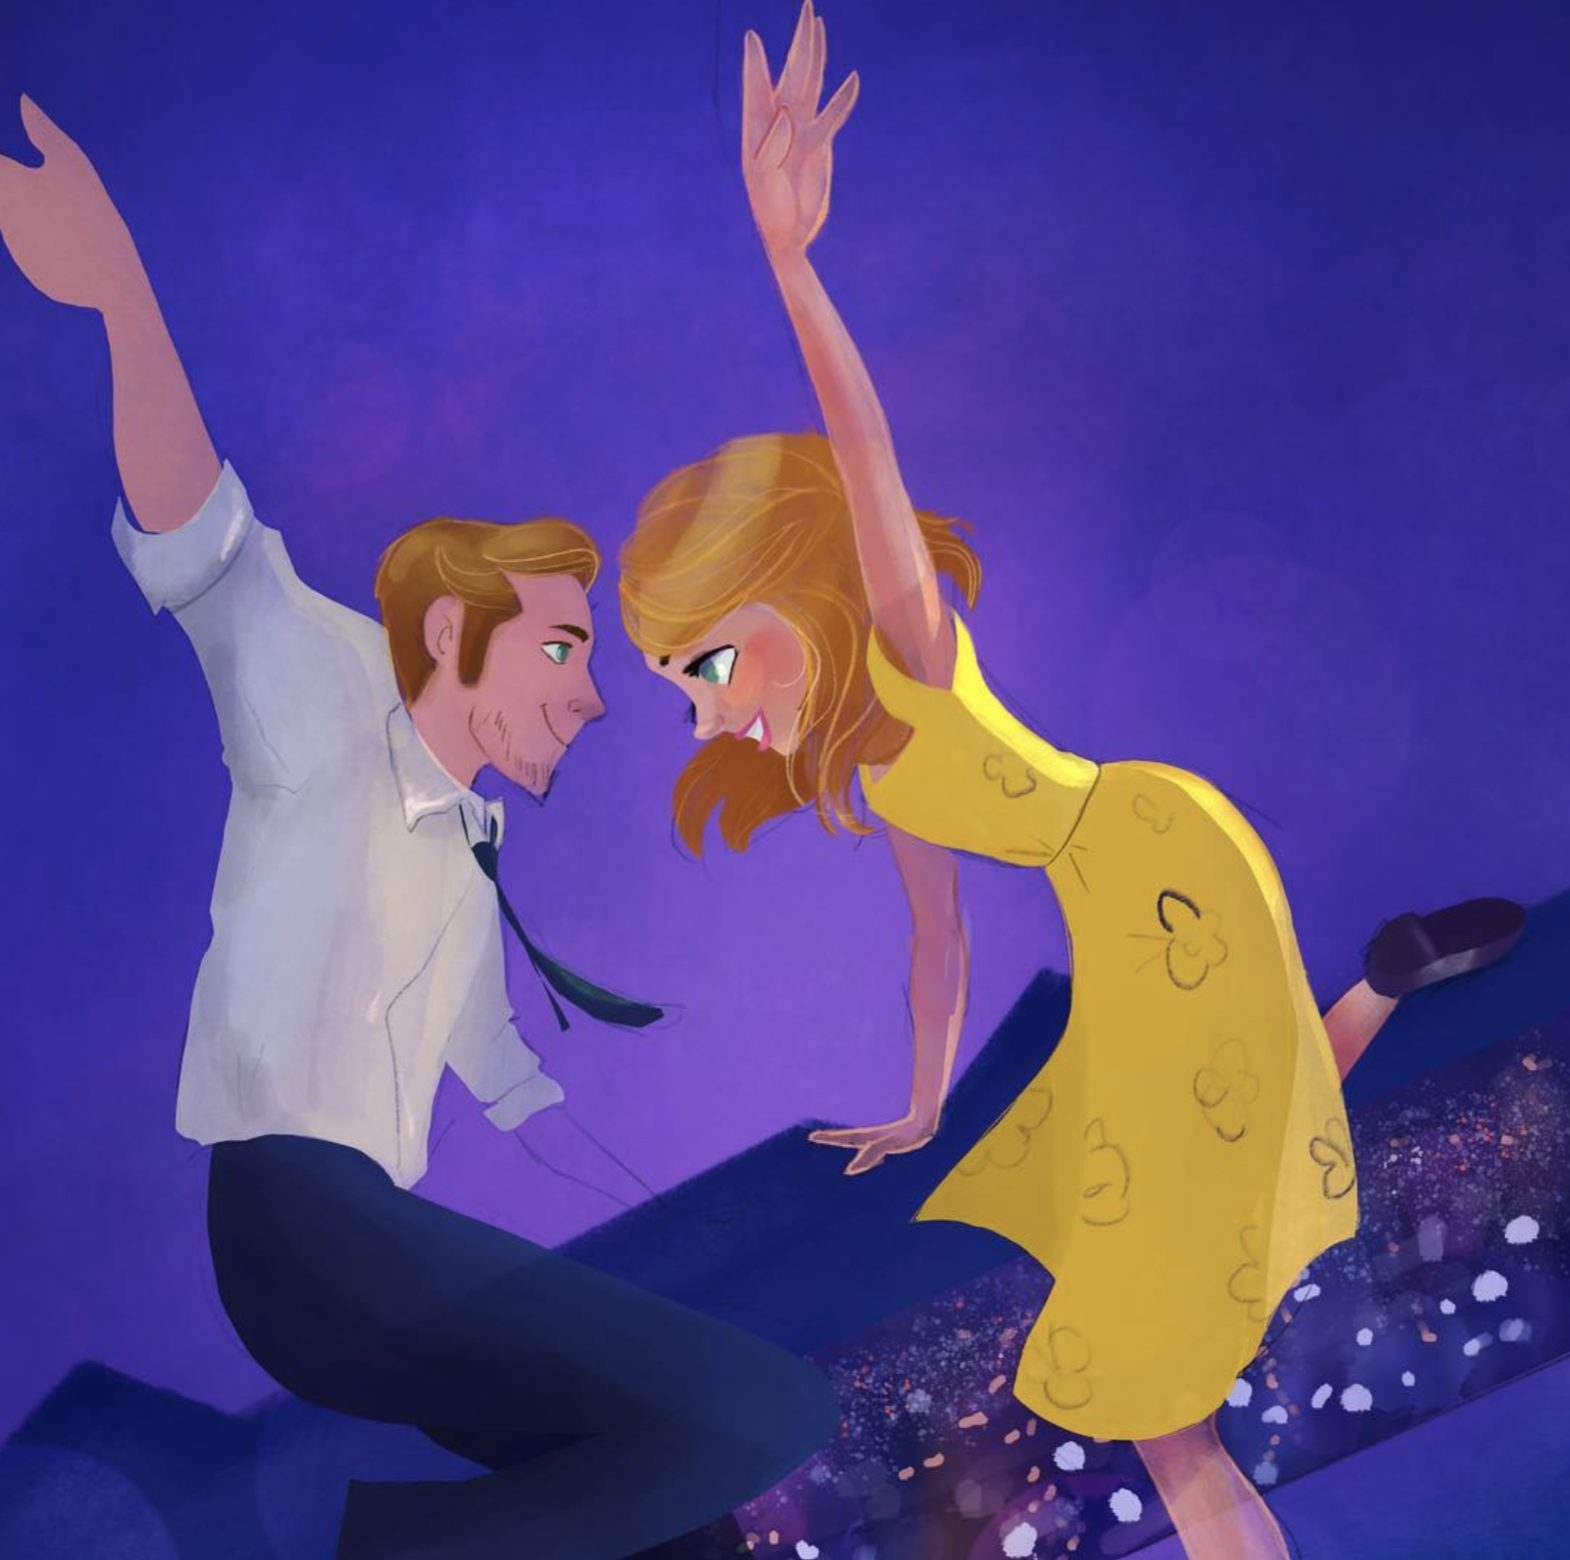 What If 'La La Land' Were A Pixar Movie? – The Pixar Detectives